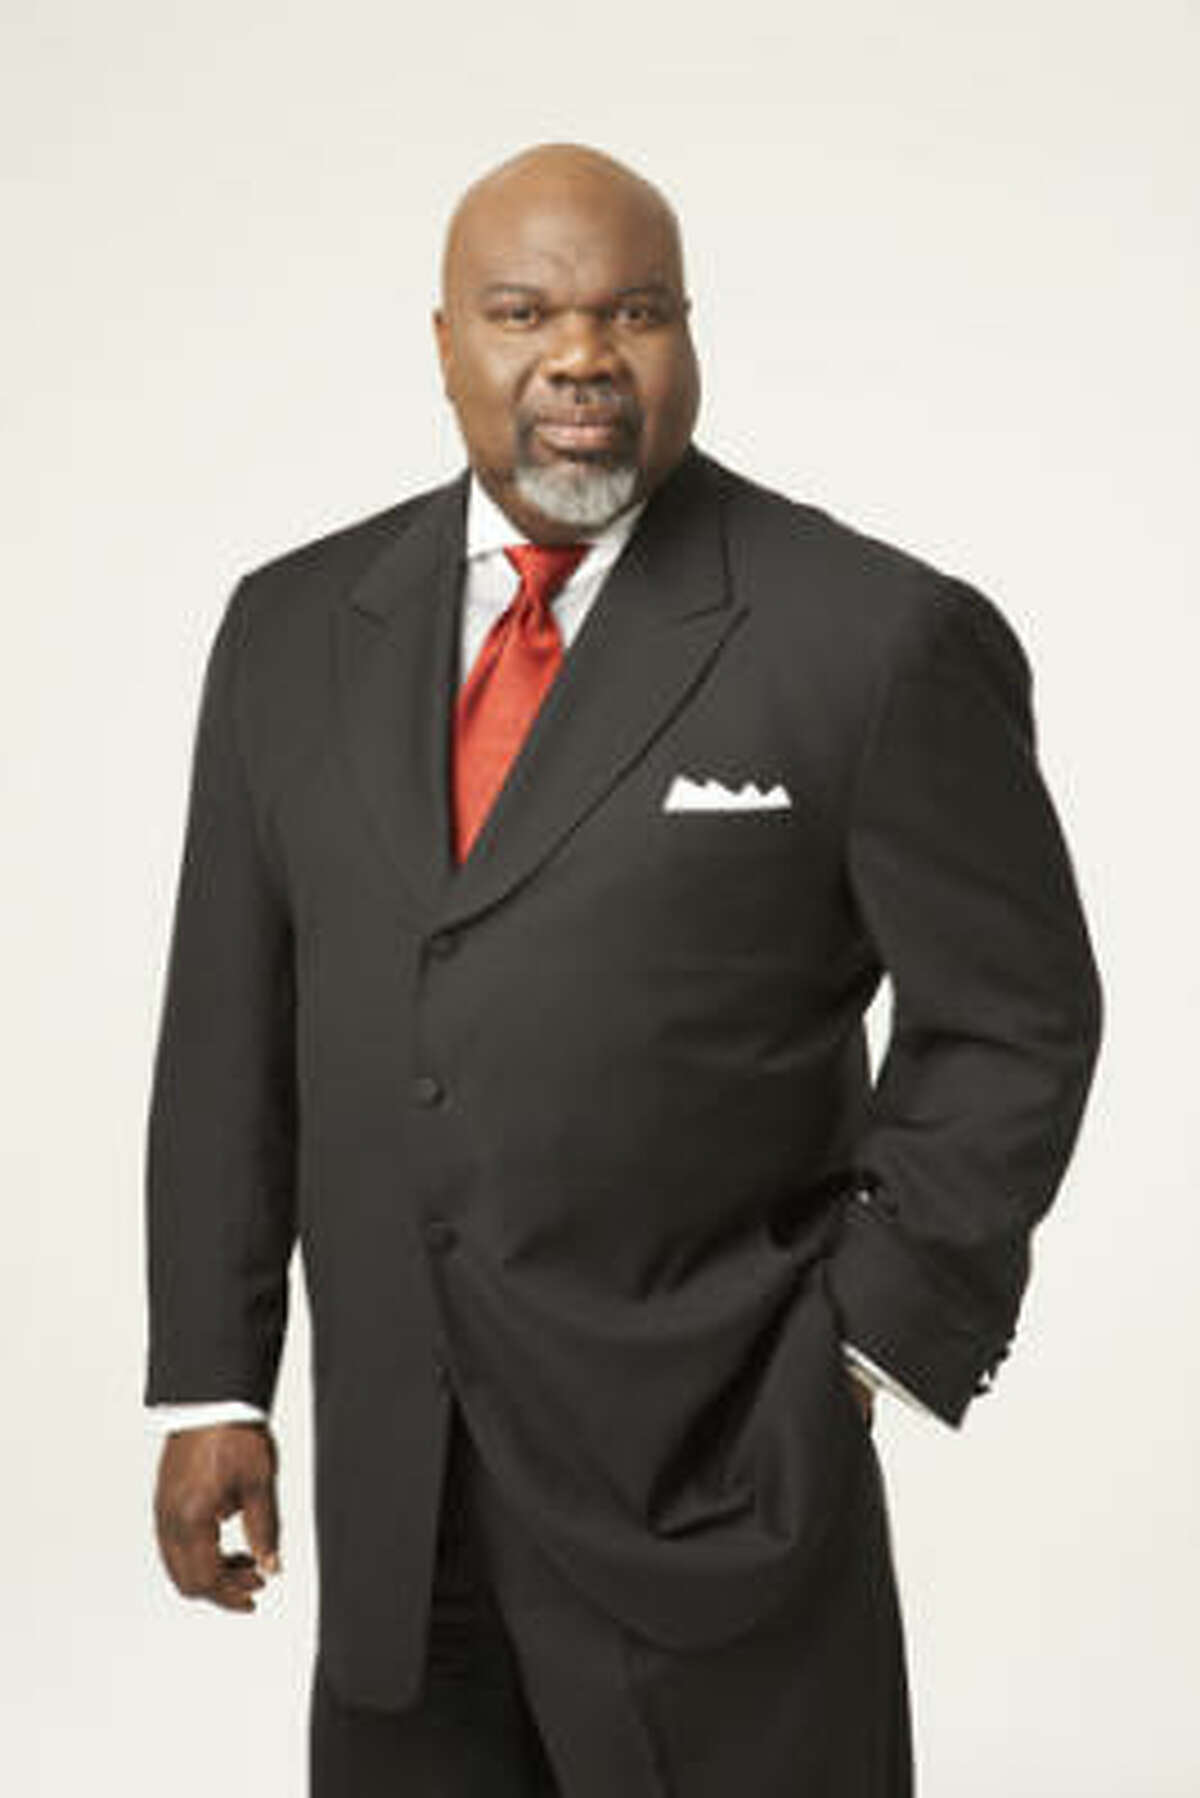 Bishop T.D. Jakes is pastor of The Potter's House in Dallas.